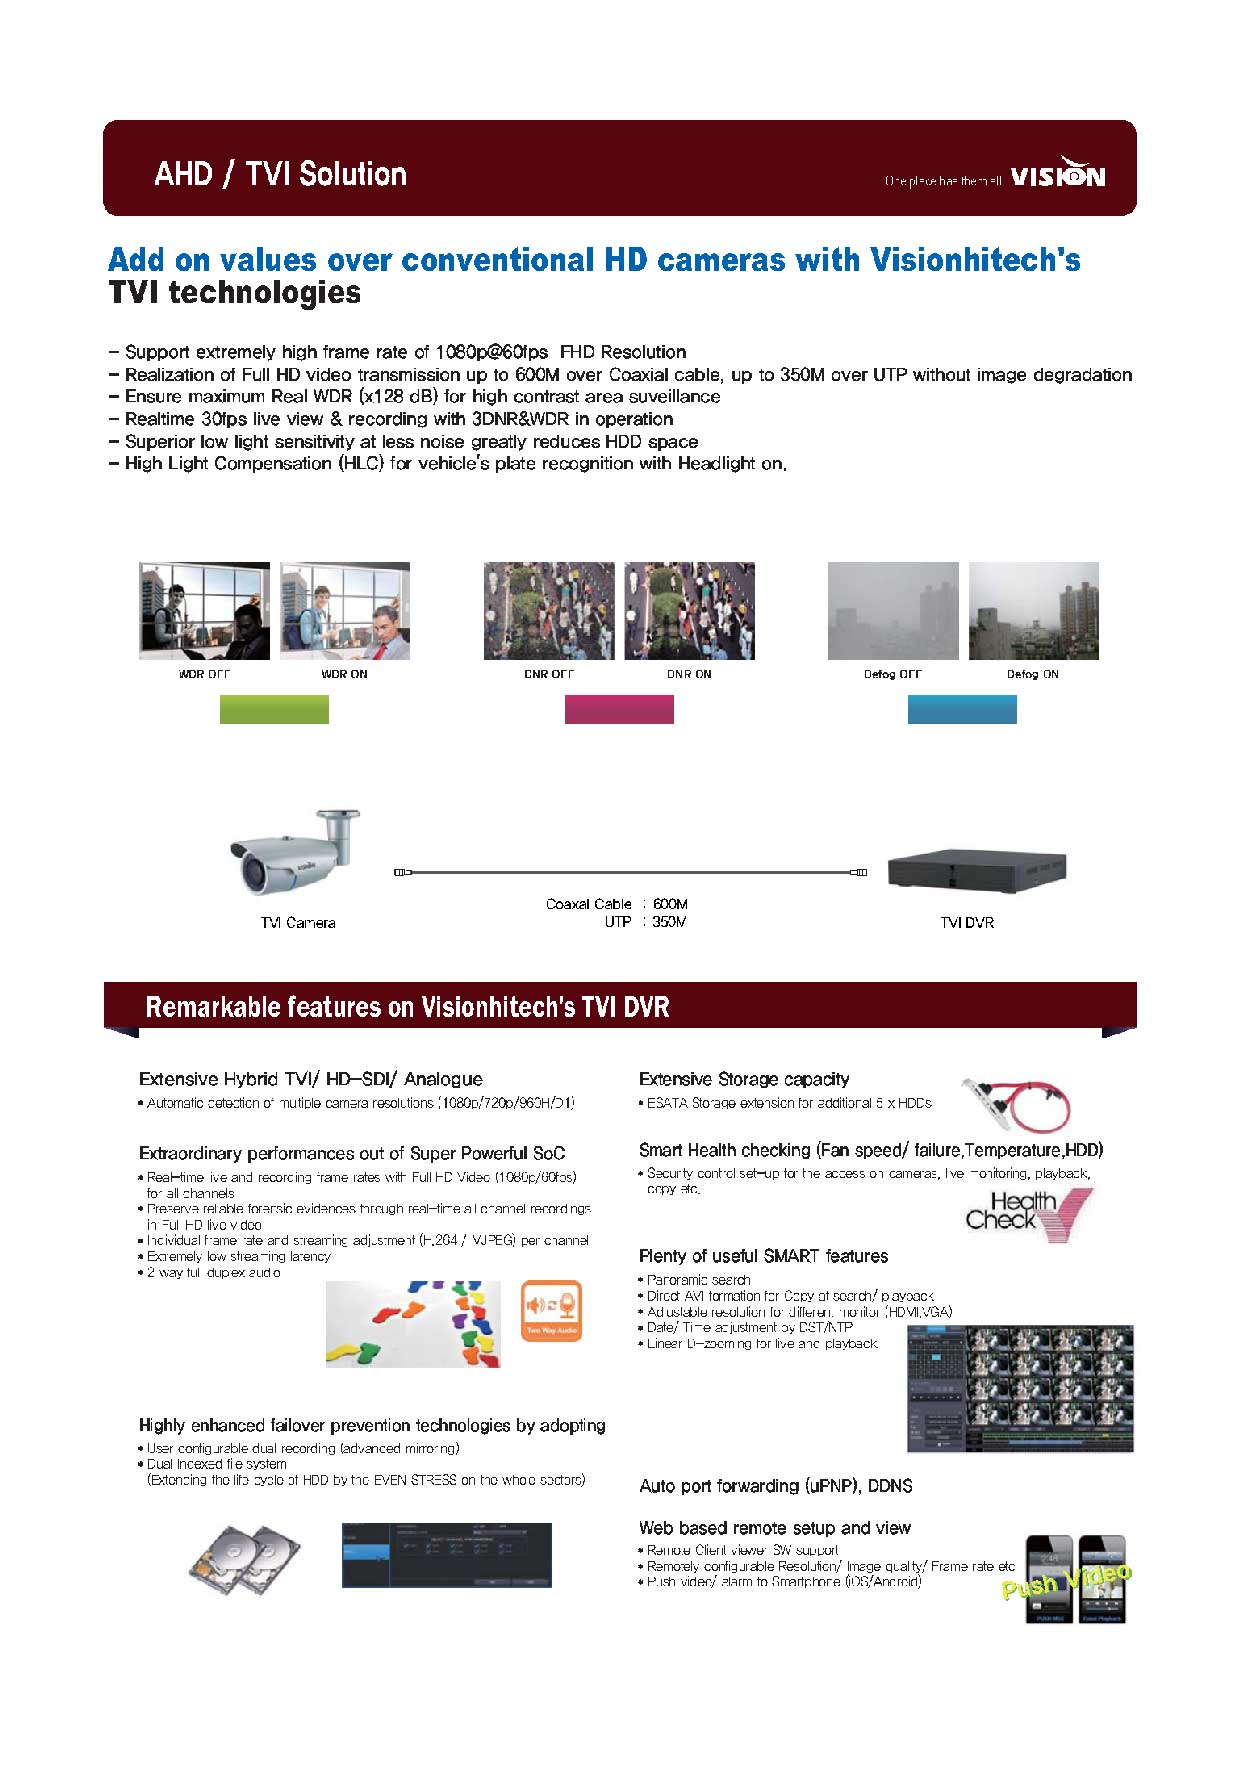 VISIONHITECH-PRODUCT-GUIDE-2016_Page_07